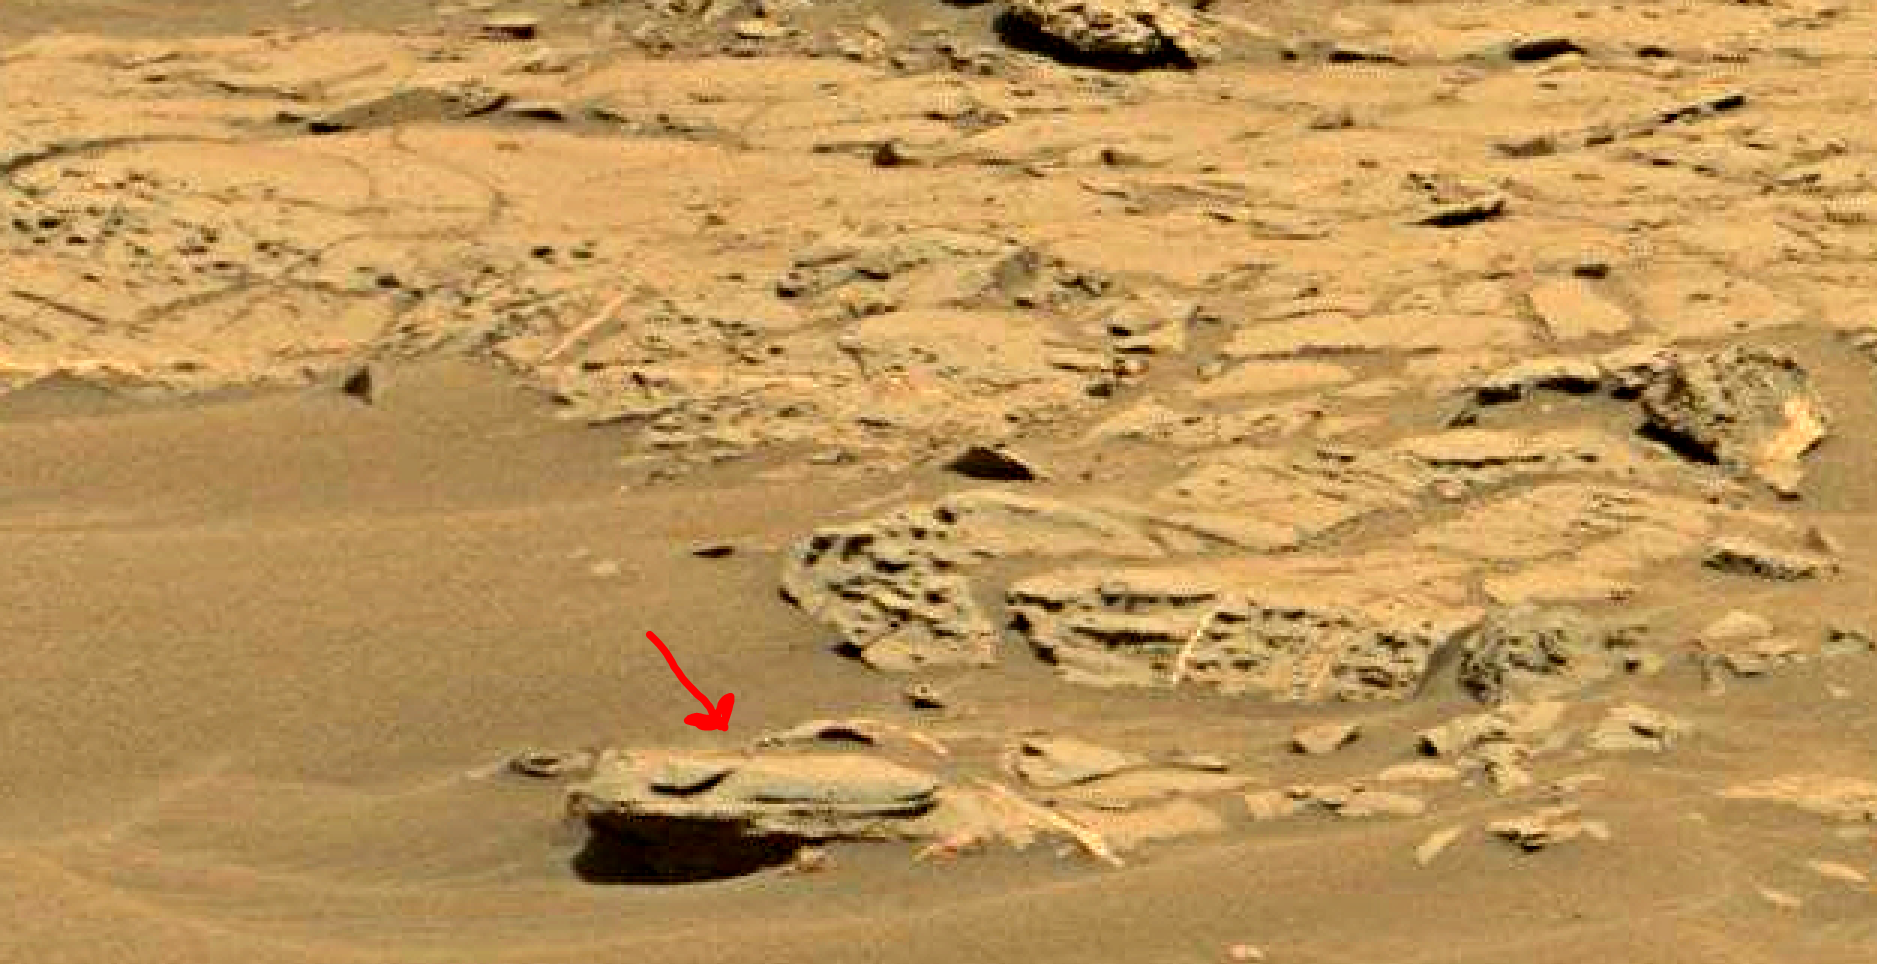 mars sol 1353 anomaly-artifacts 38 was life on mars